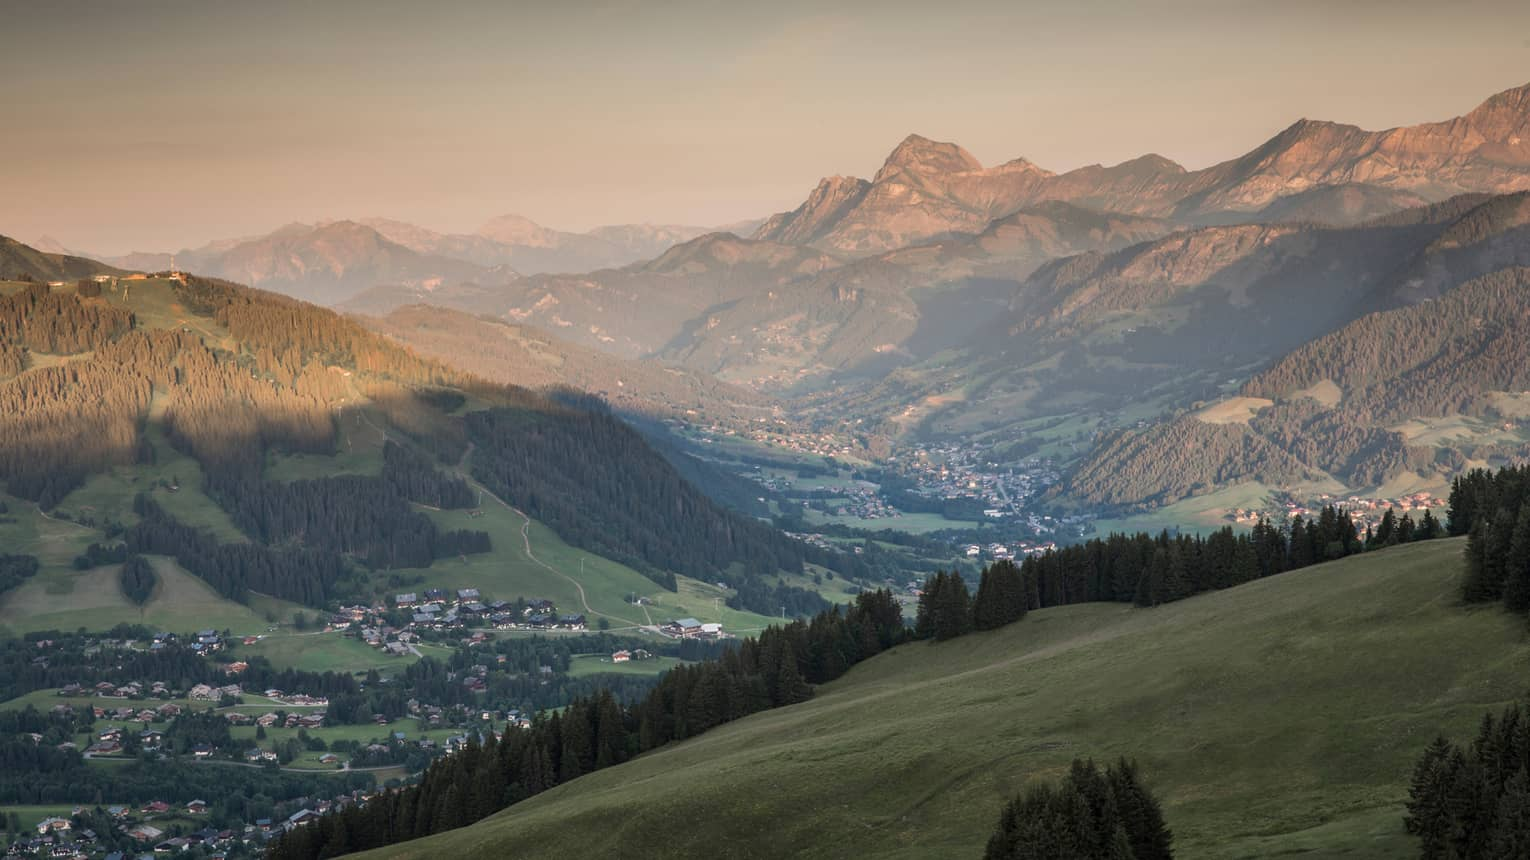 Sweeping views over green French Alps mountains at sunset